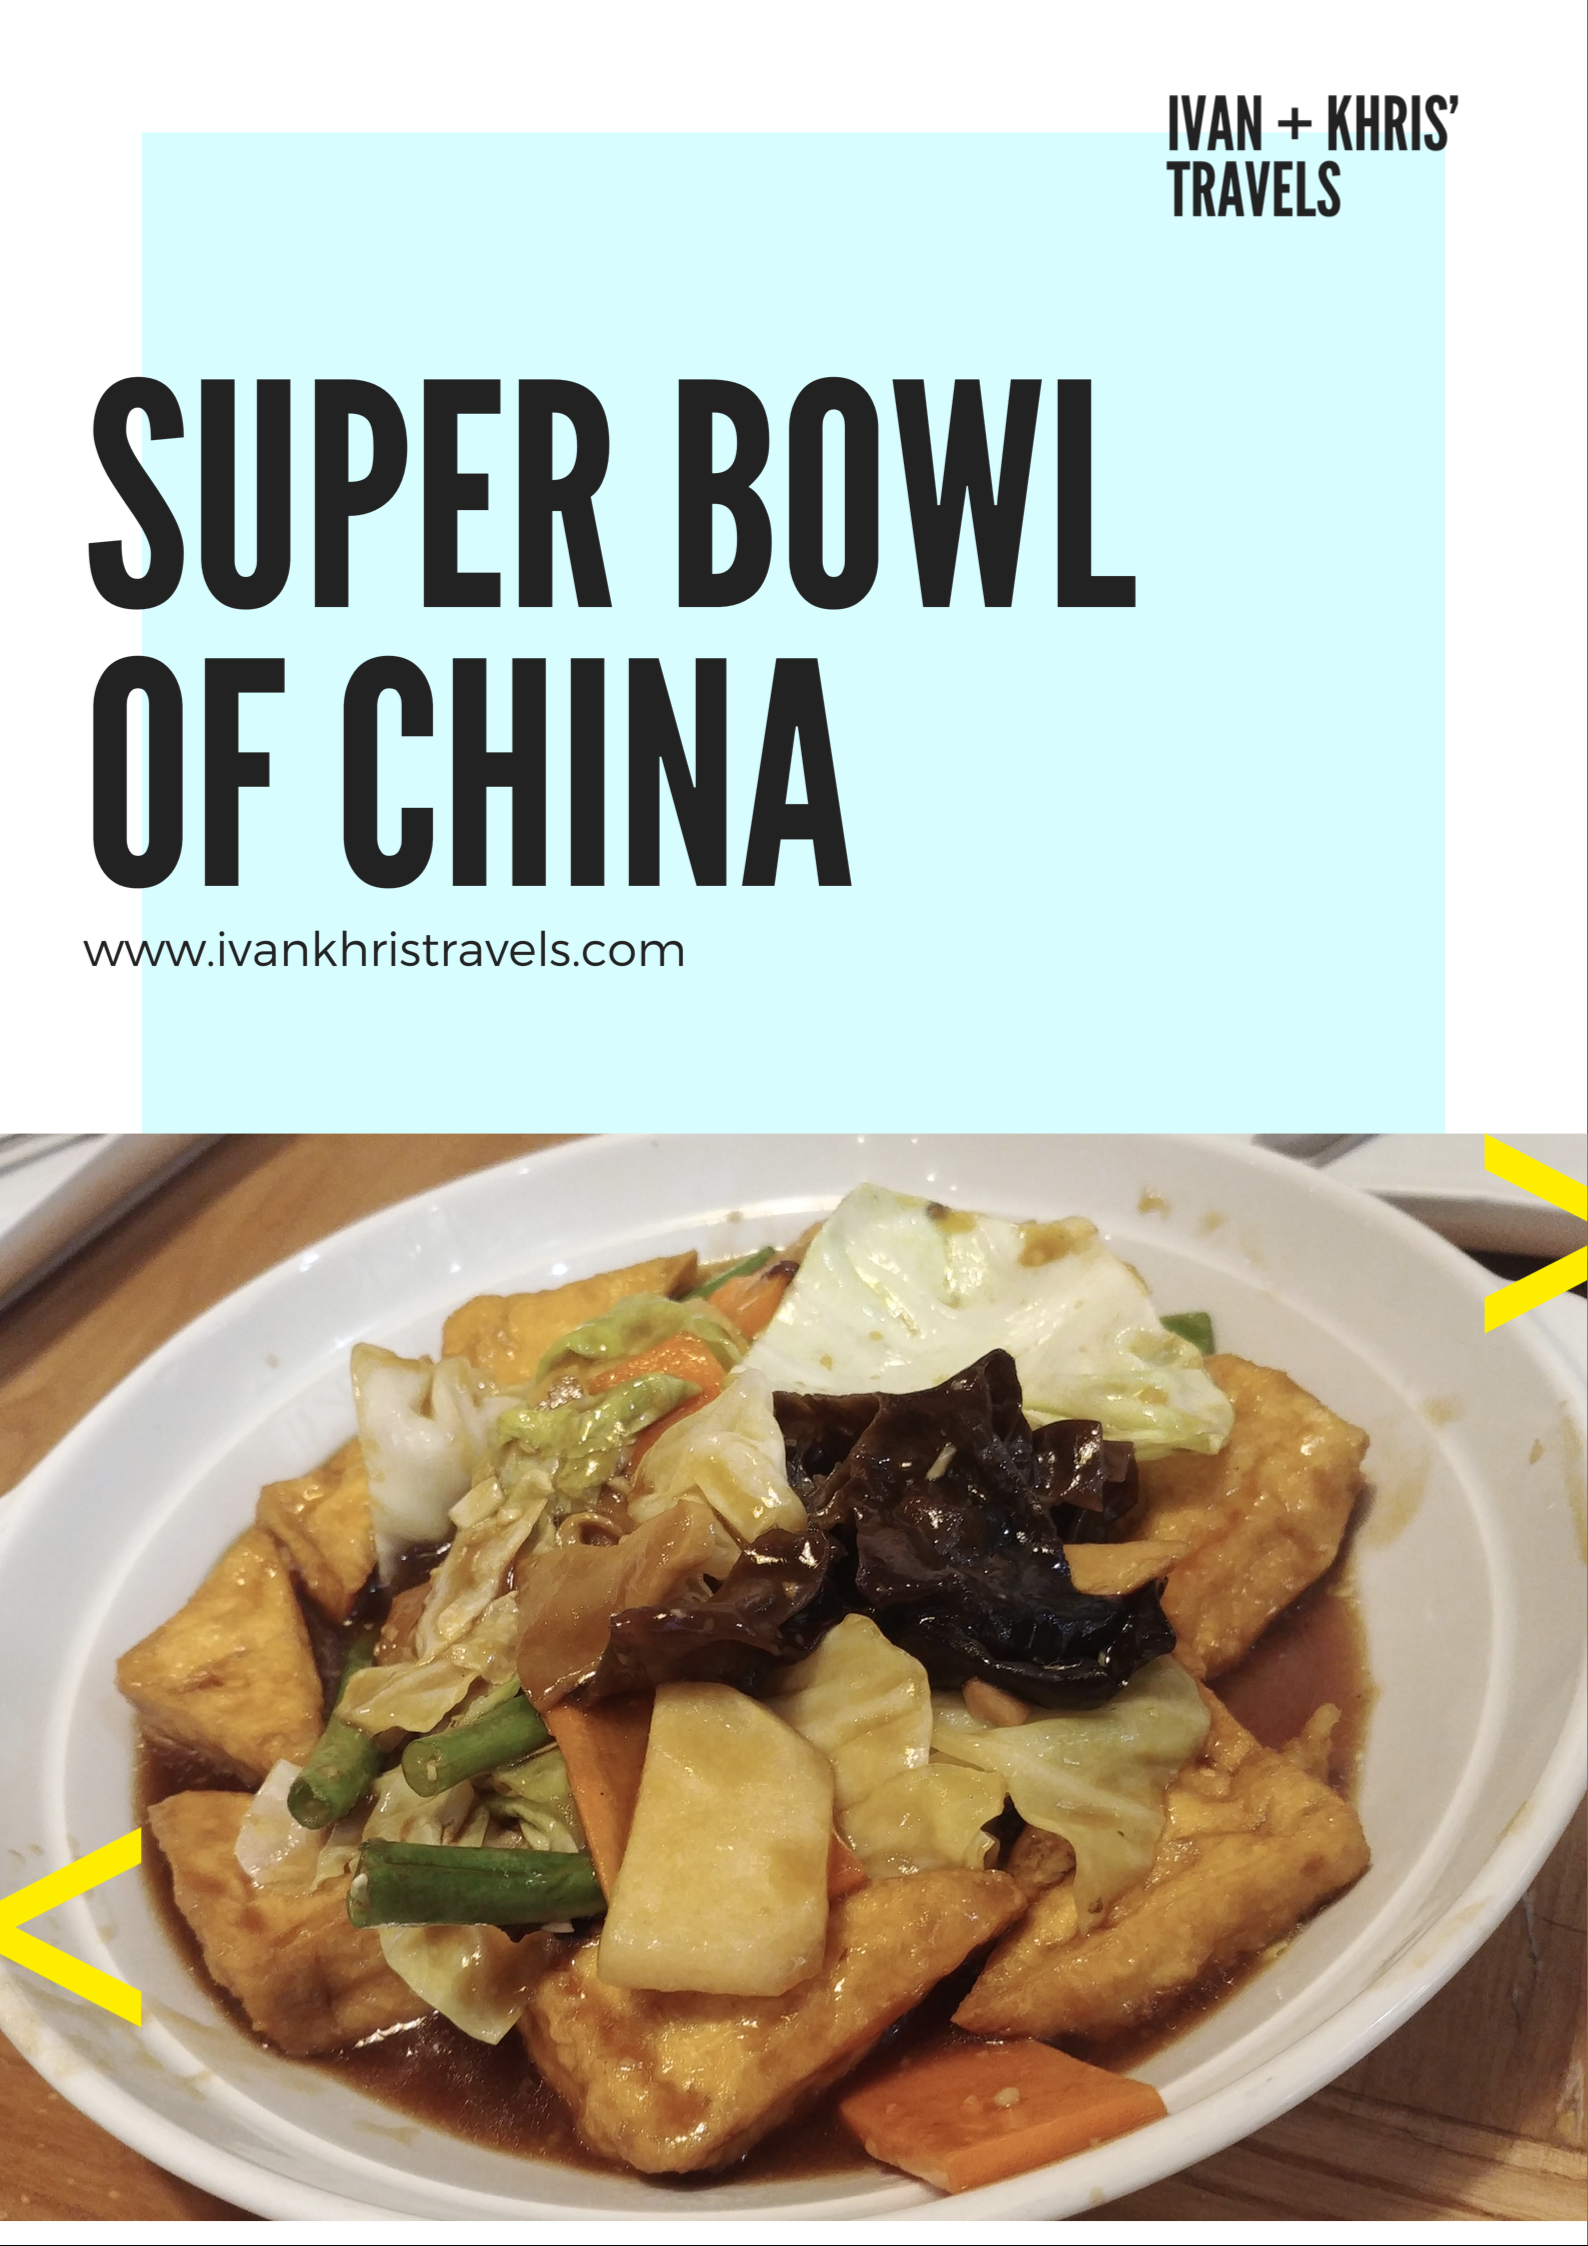 Super Bowl Of China Indulge On Delectable Chinese Food In 2020 Food Food Reviews Satisfying Food